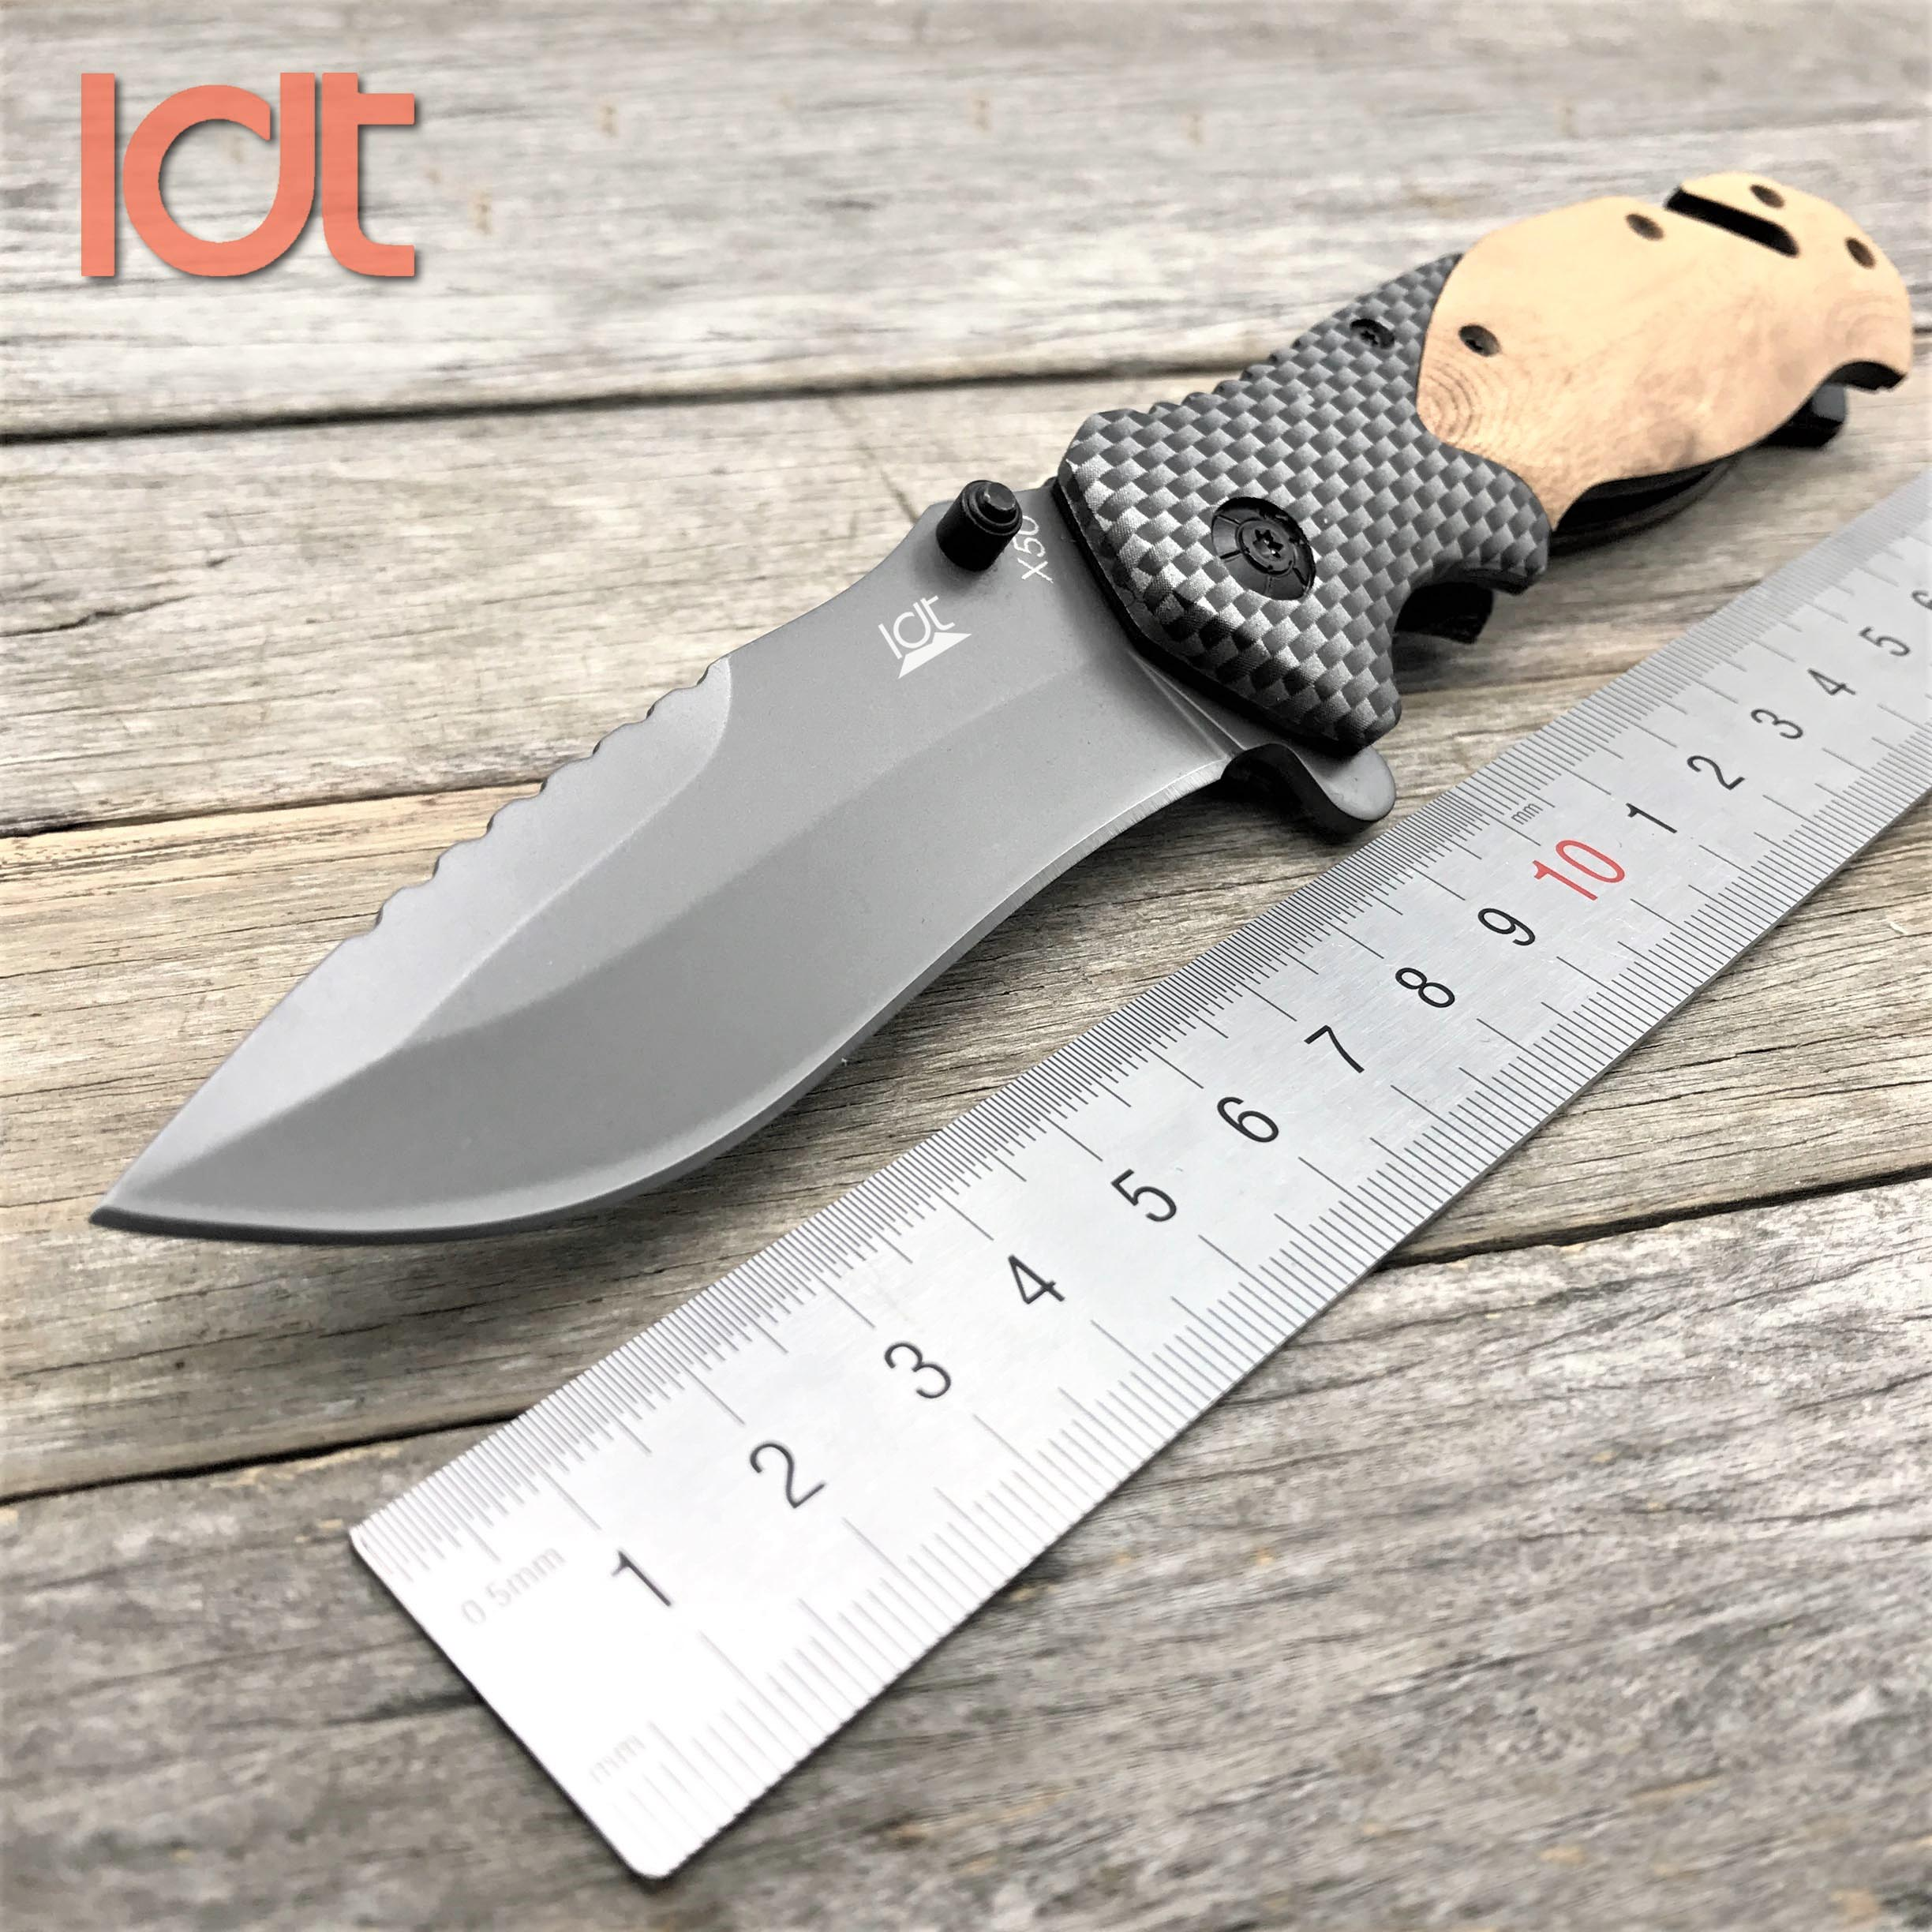 LDT X50 Folding Knife 7Cr18Mov Blade Carbon Fiber Rosewood Handle military Outdoor Pocket Knife Camping Hunting Knives EDC Tool image